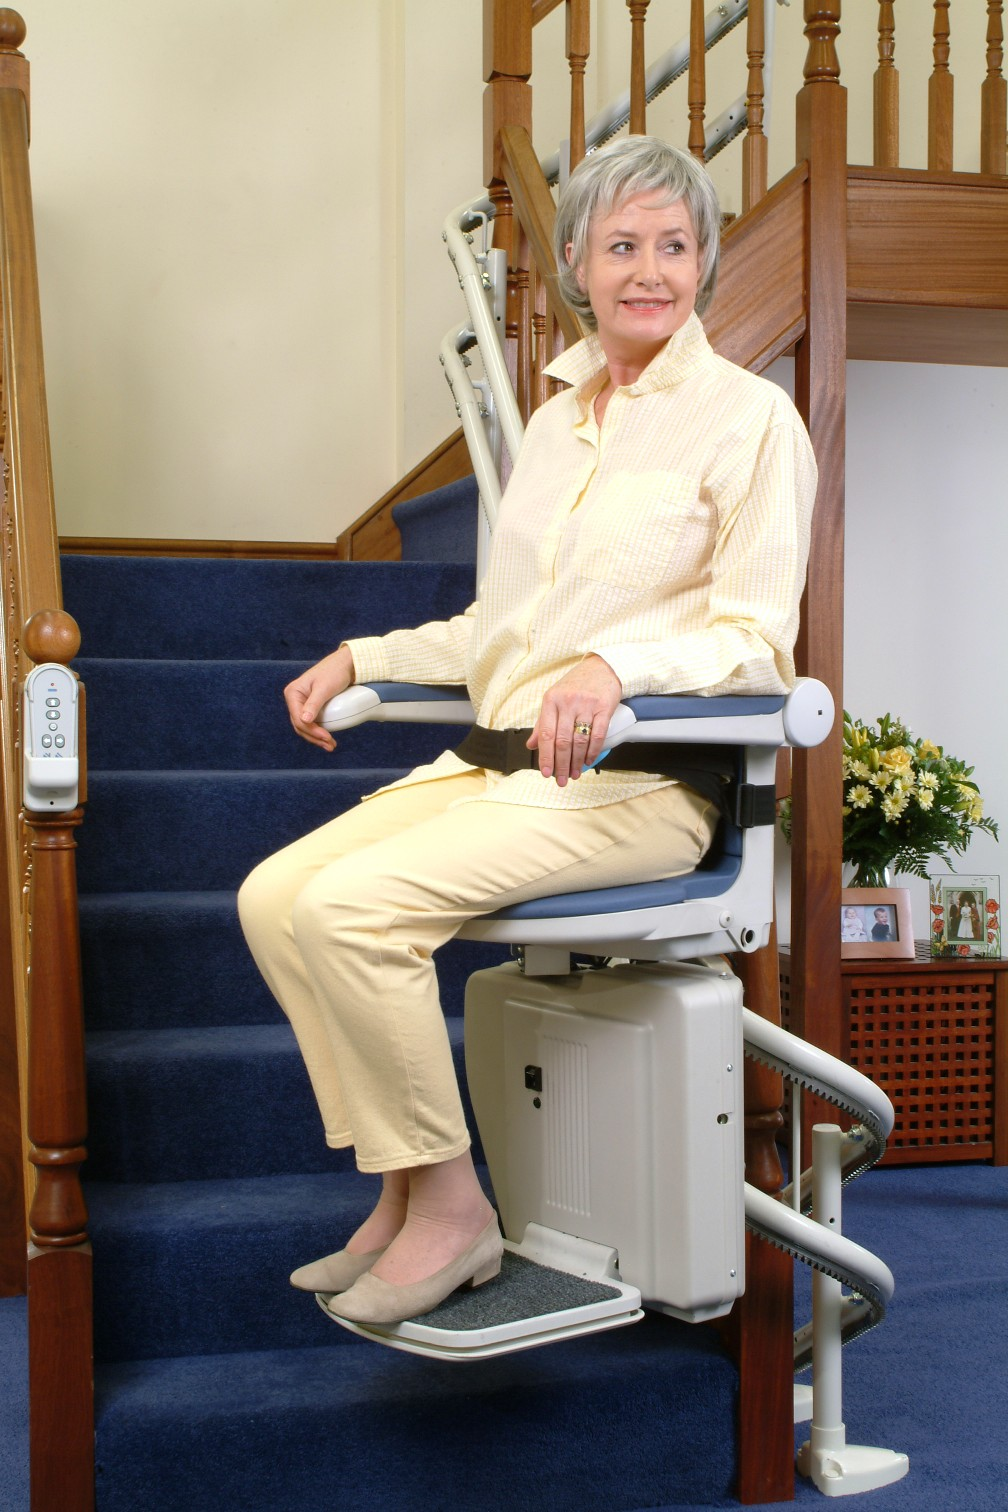 do it yourself stair lift, outdoor stair lift, stair lifts new englind, electric lift stair